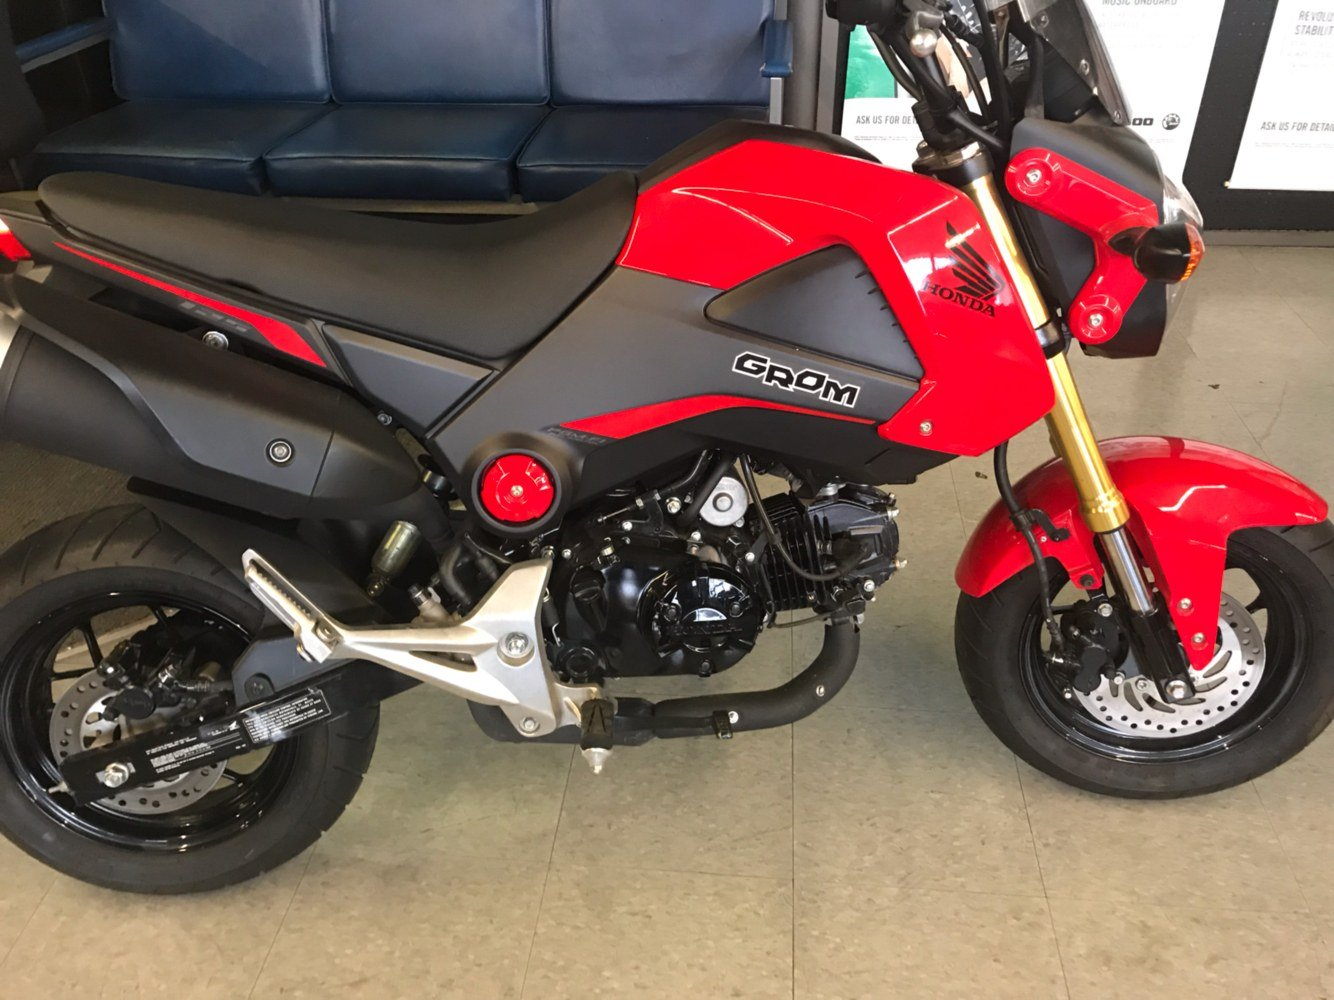 2015 Honda Grom for sale 3096